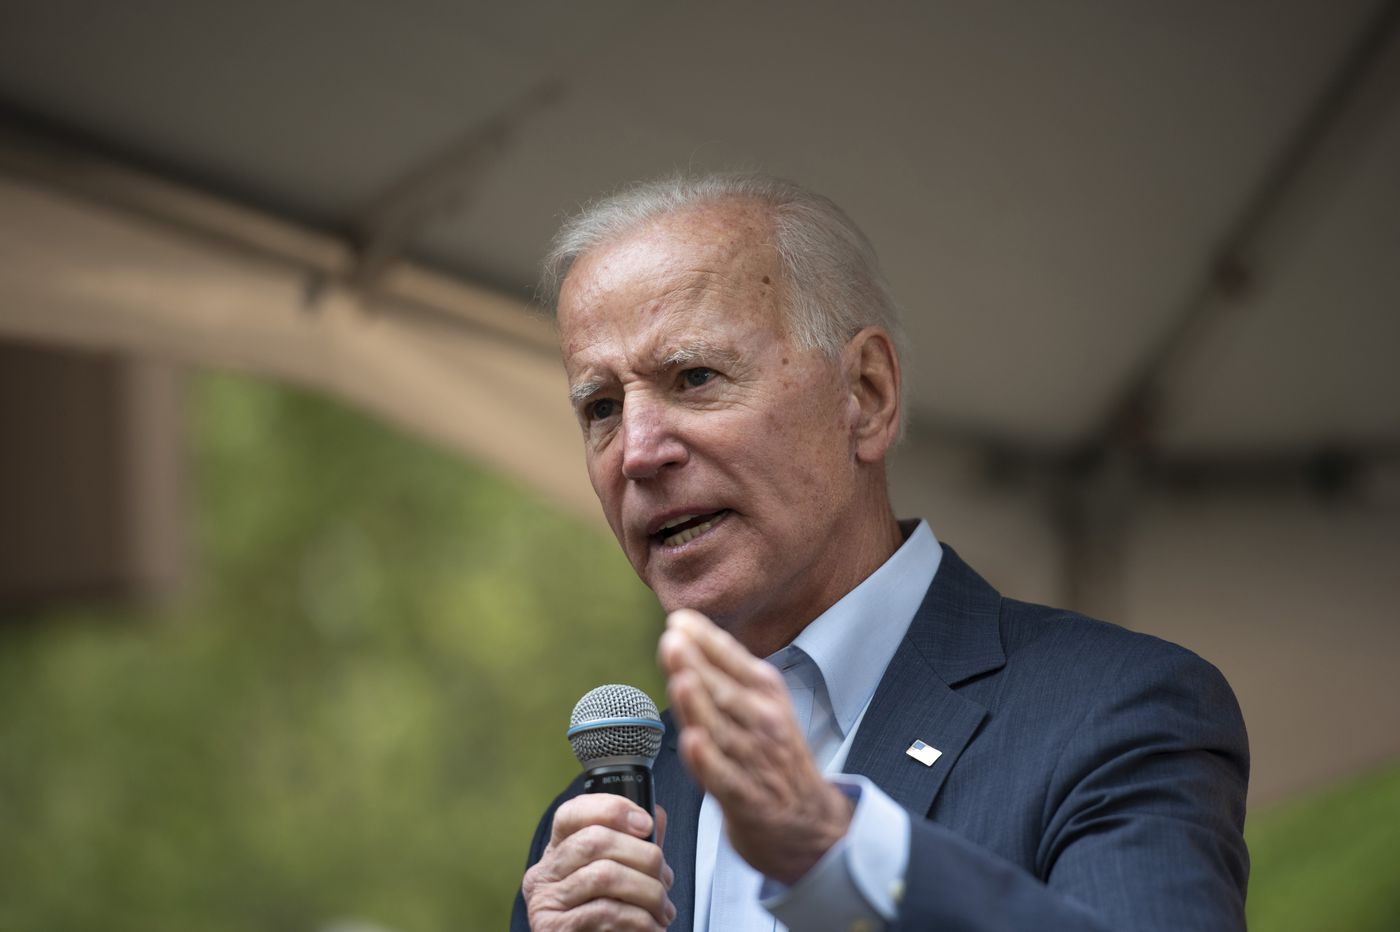 Joe Biden comes to Philly rally Saturday as the Democratic front-runner. Can he keep it up as his rivals attack?